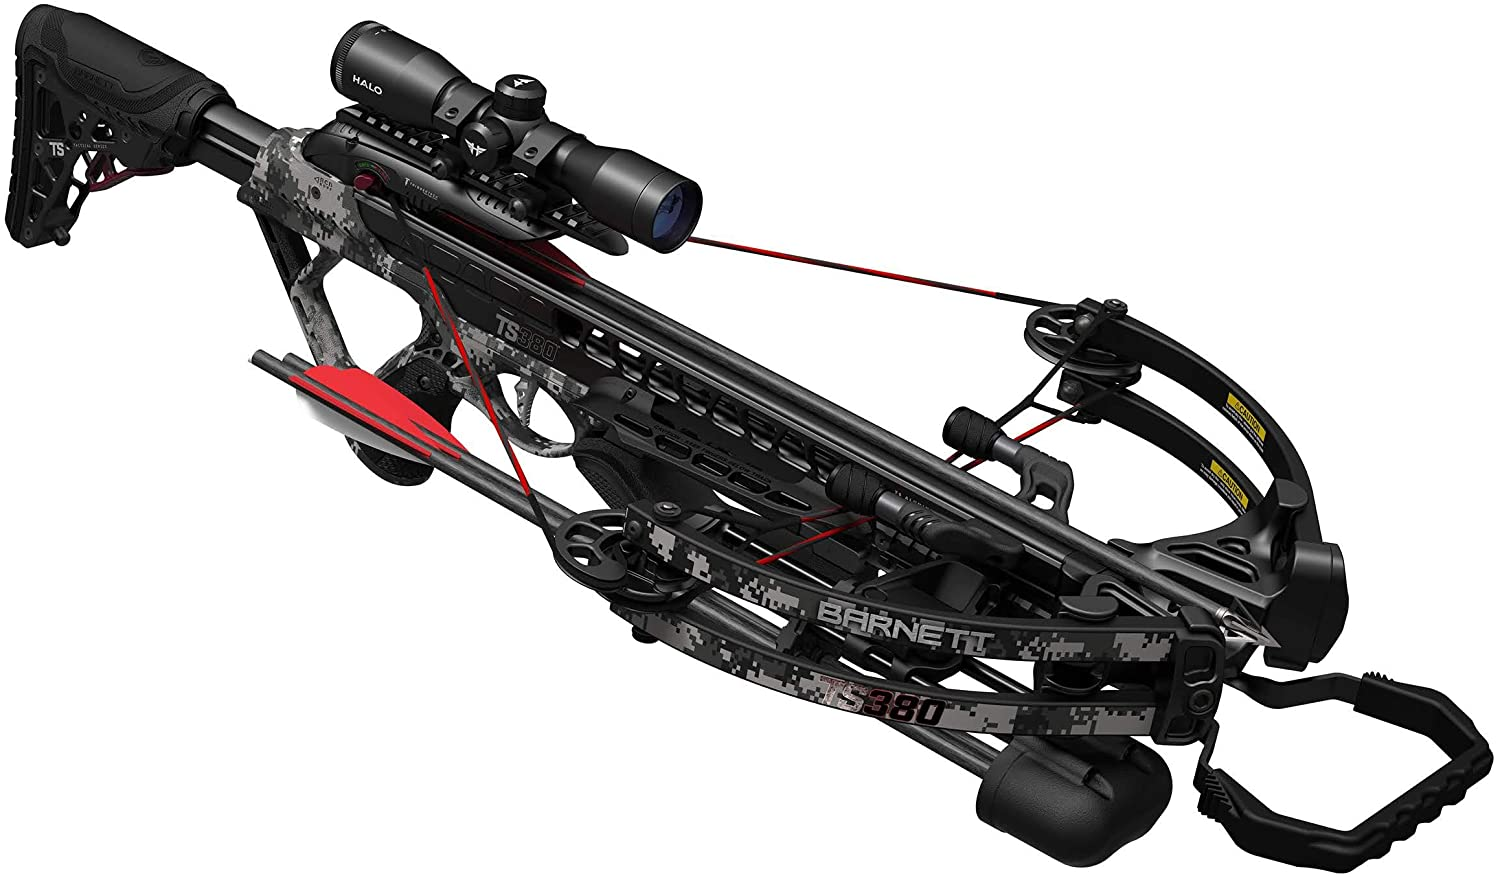 Barnett TS380 Crossbow Review